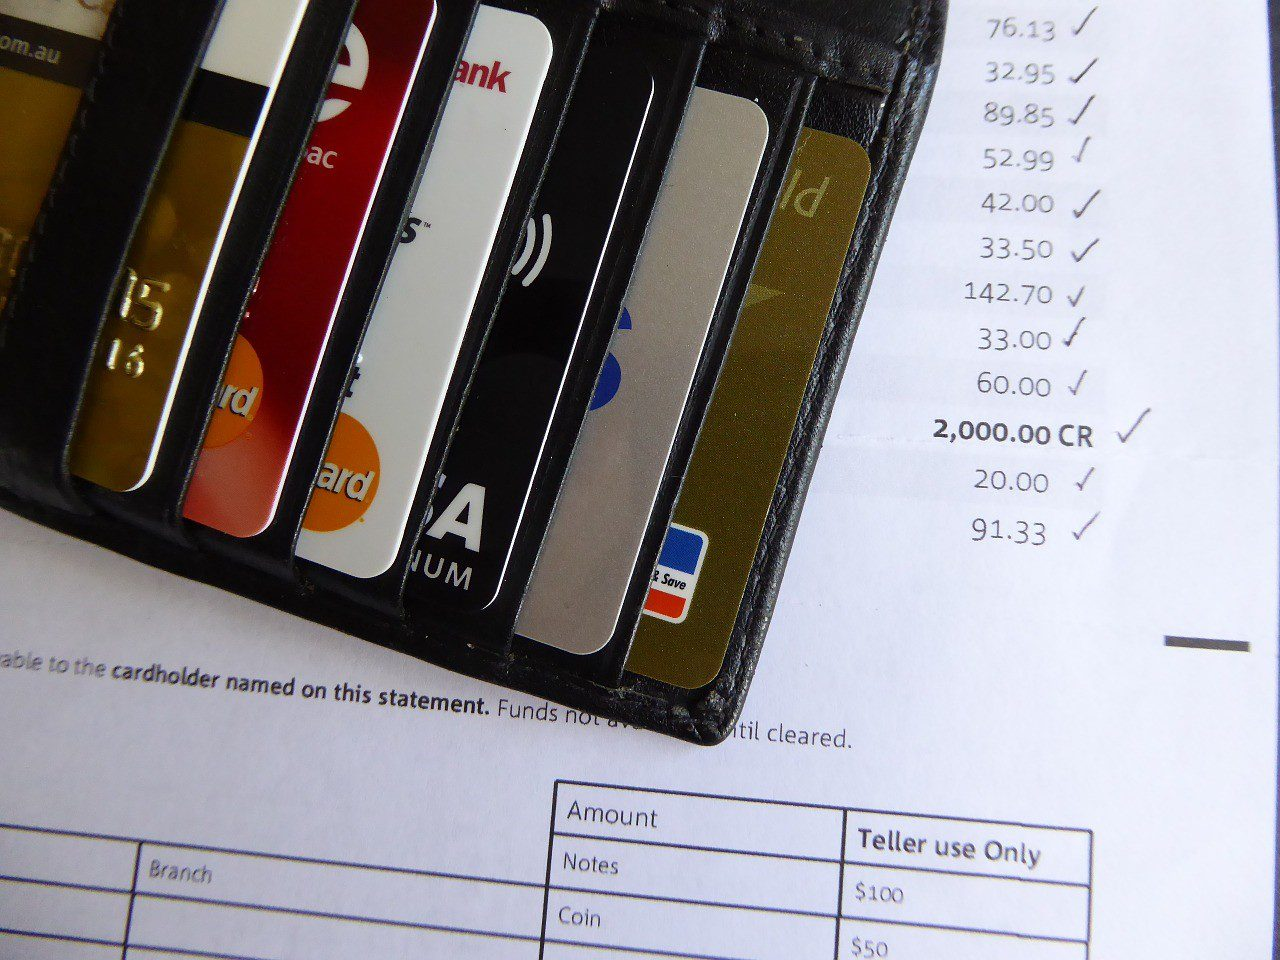 Wallet with credit cards placed on top of a document